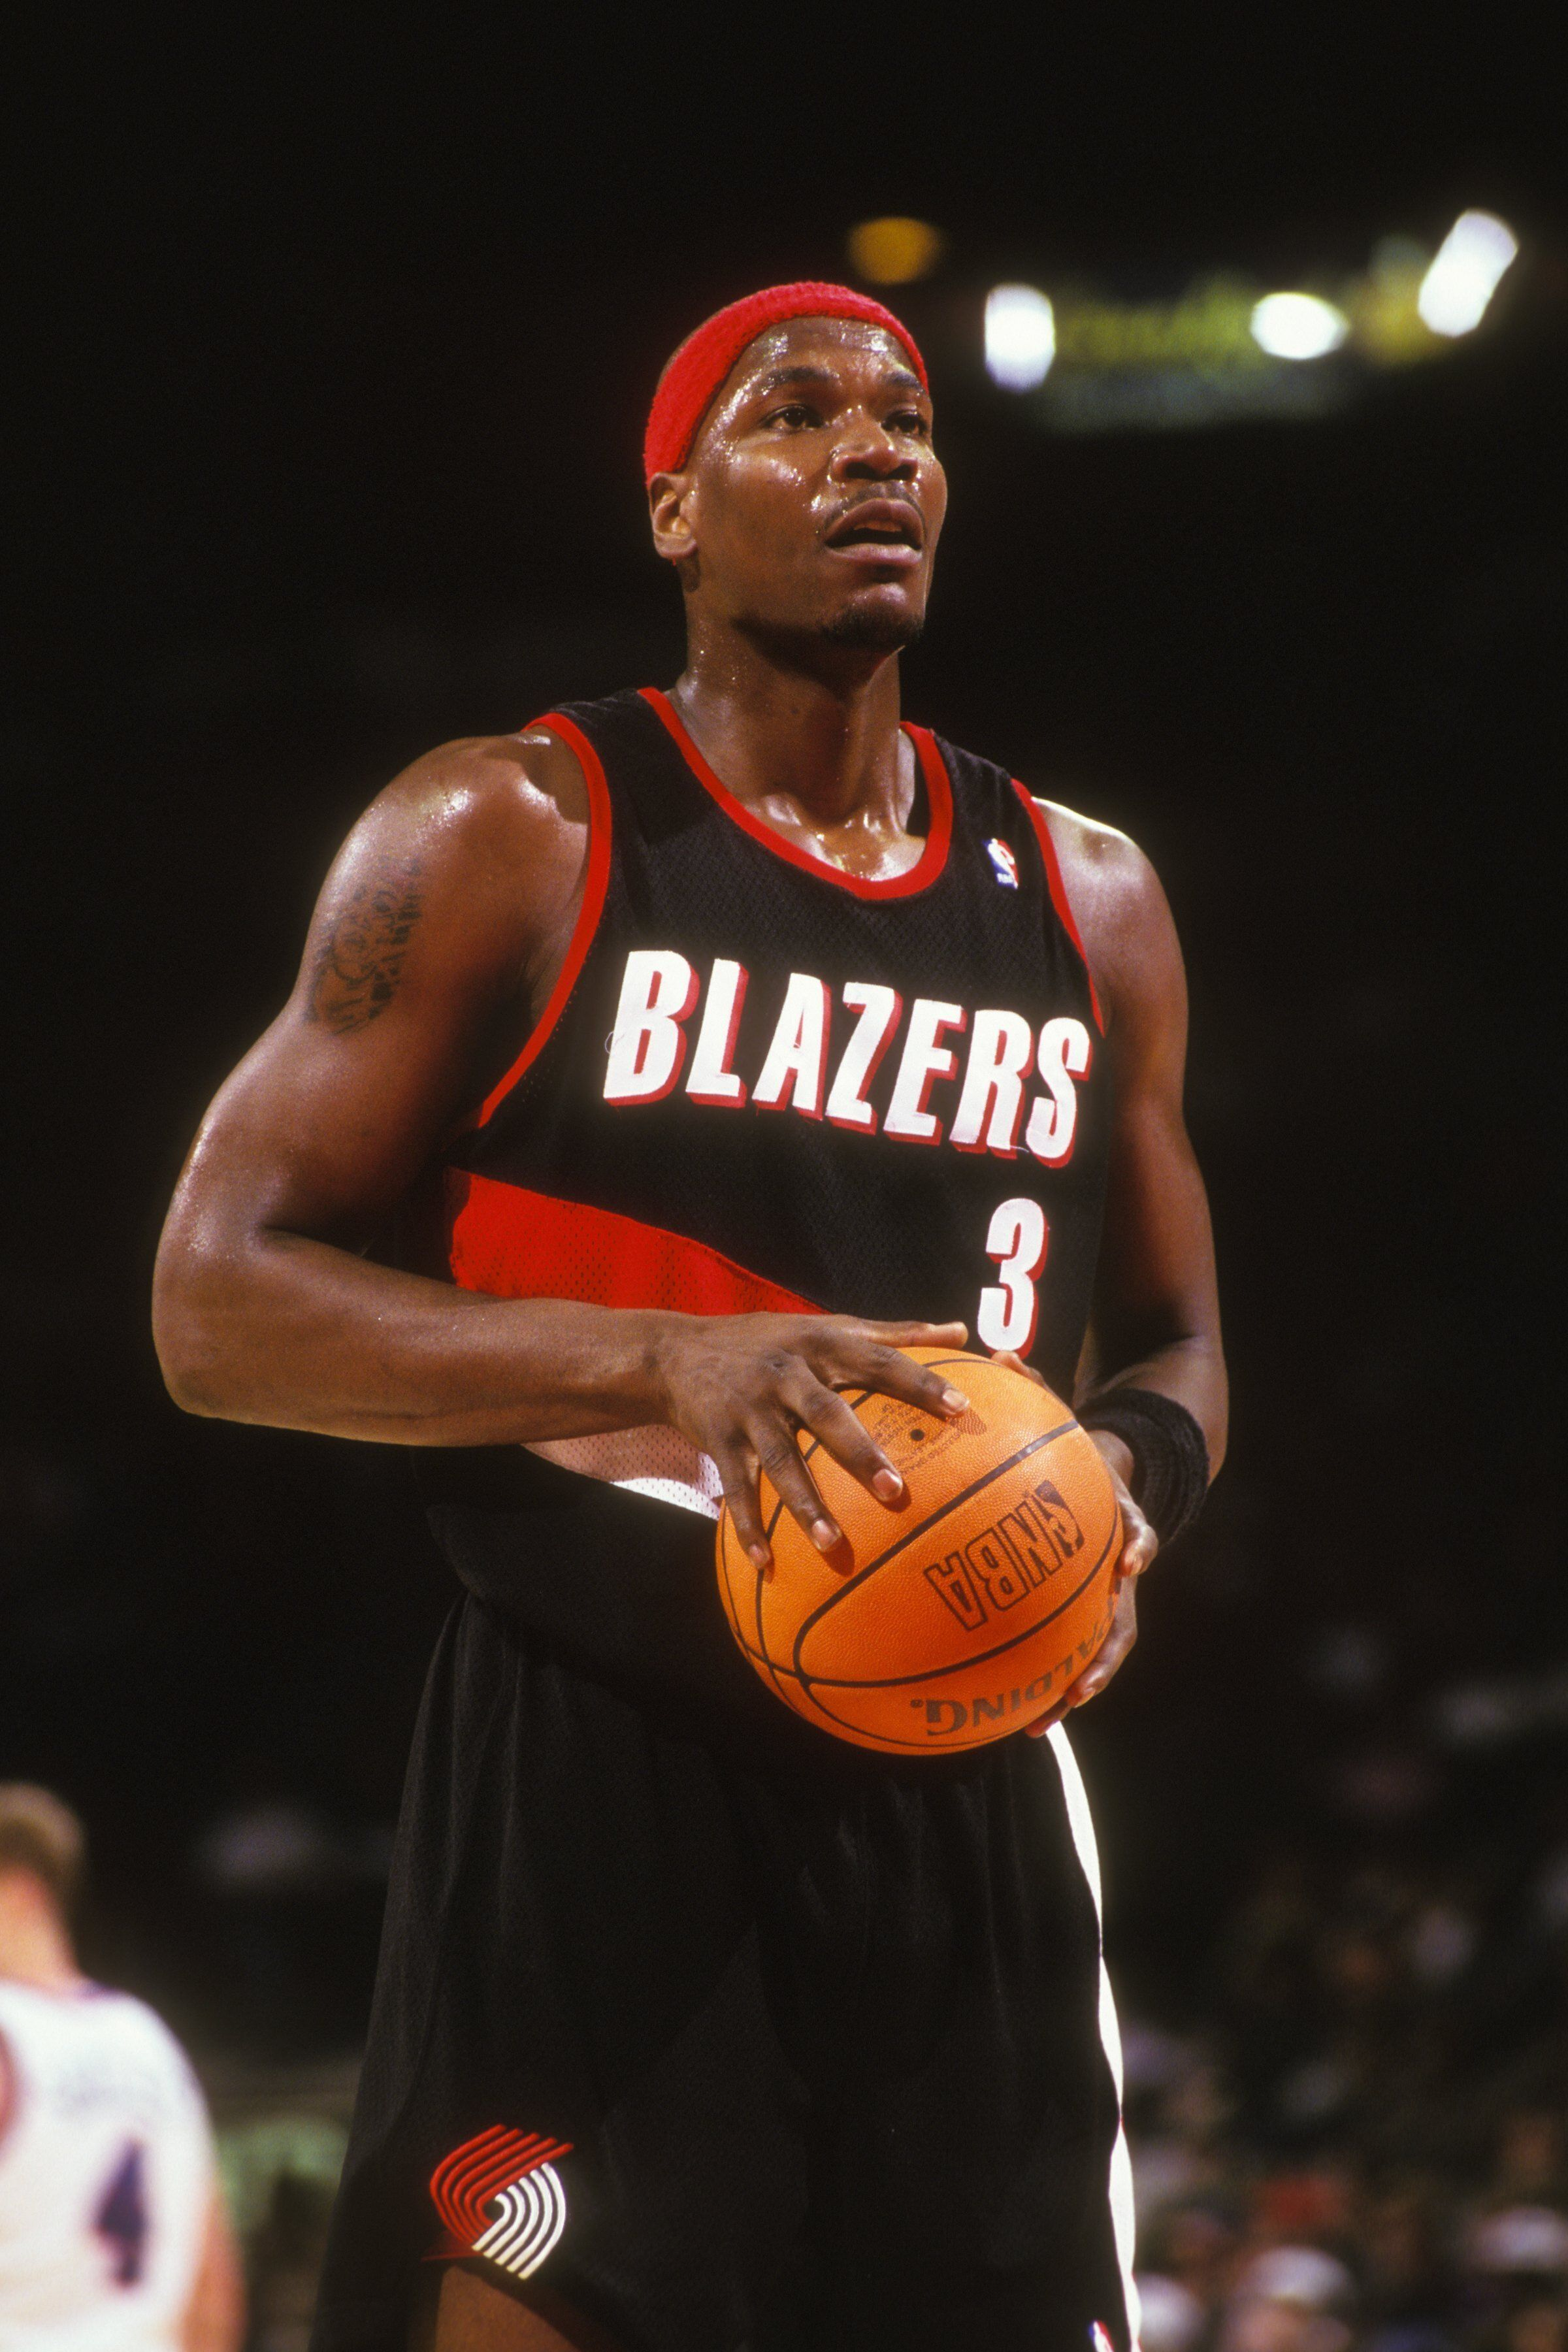 Cliff Robinson takes a foul shot during in game against the Washington Bullets in 1995.